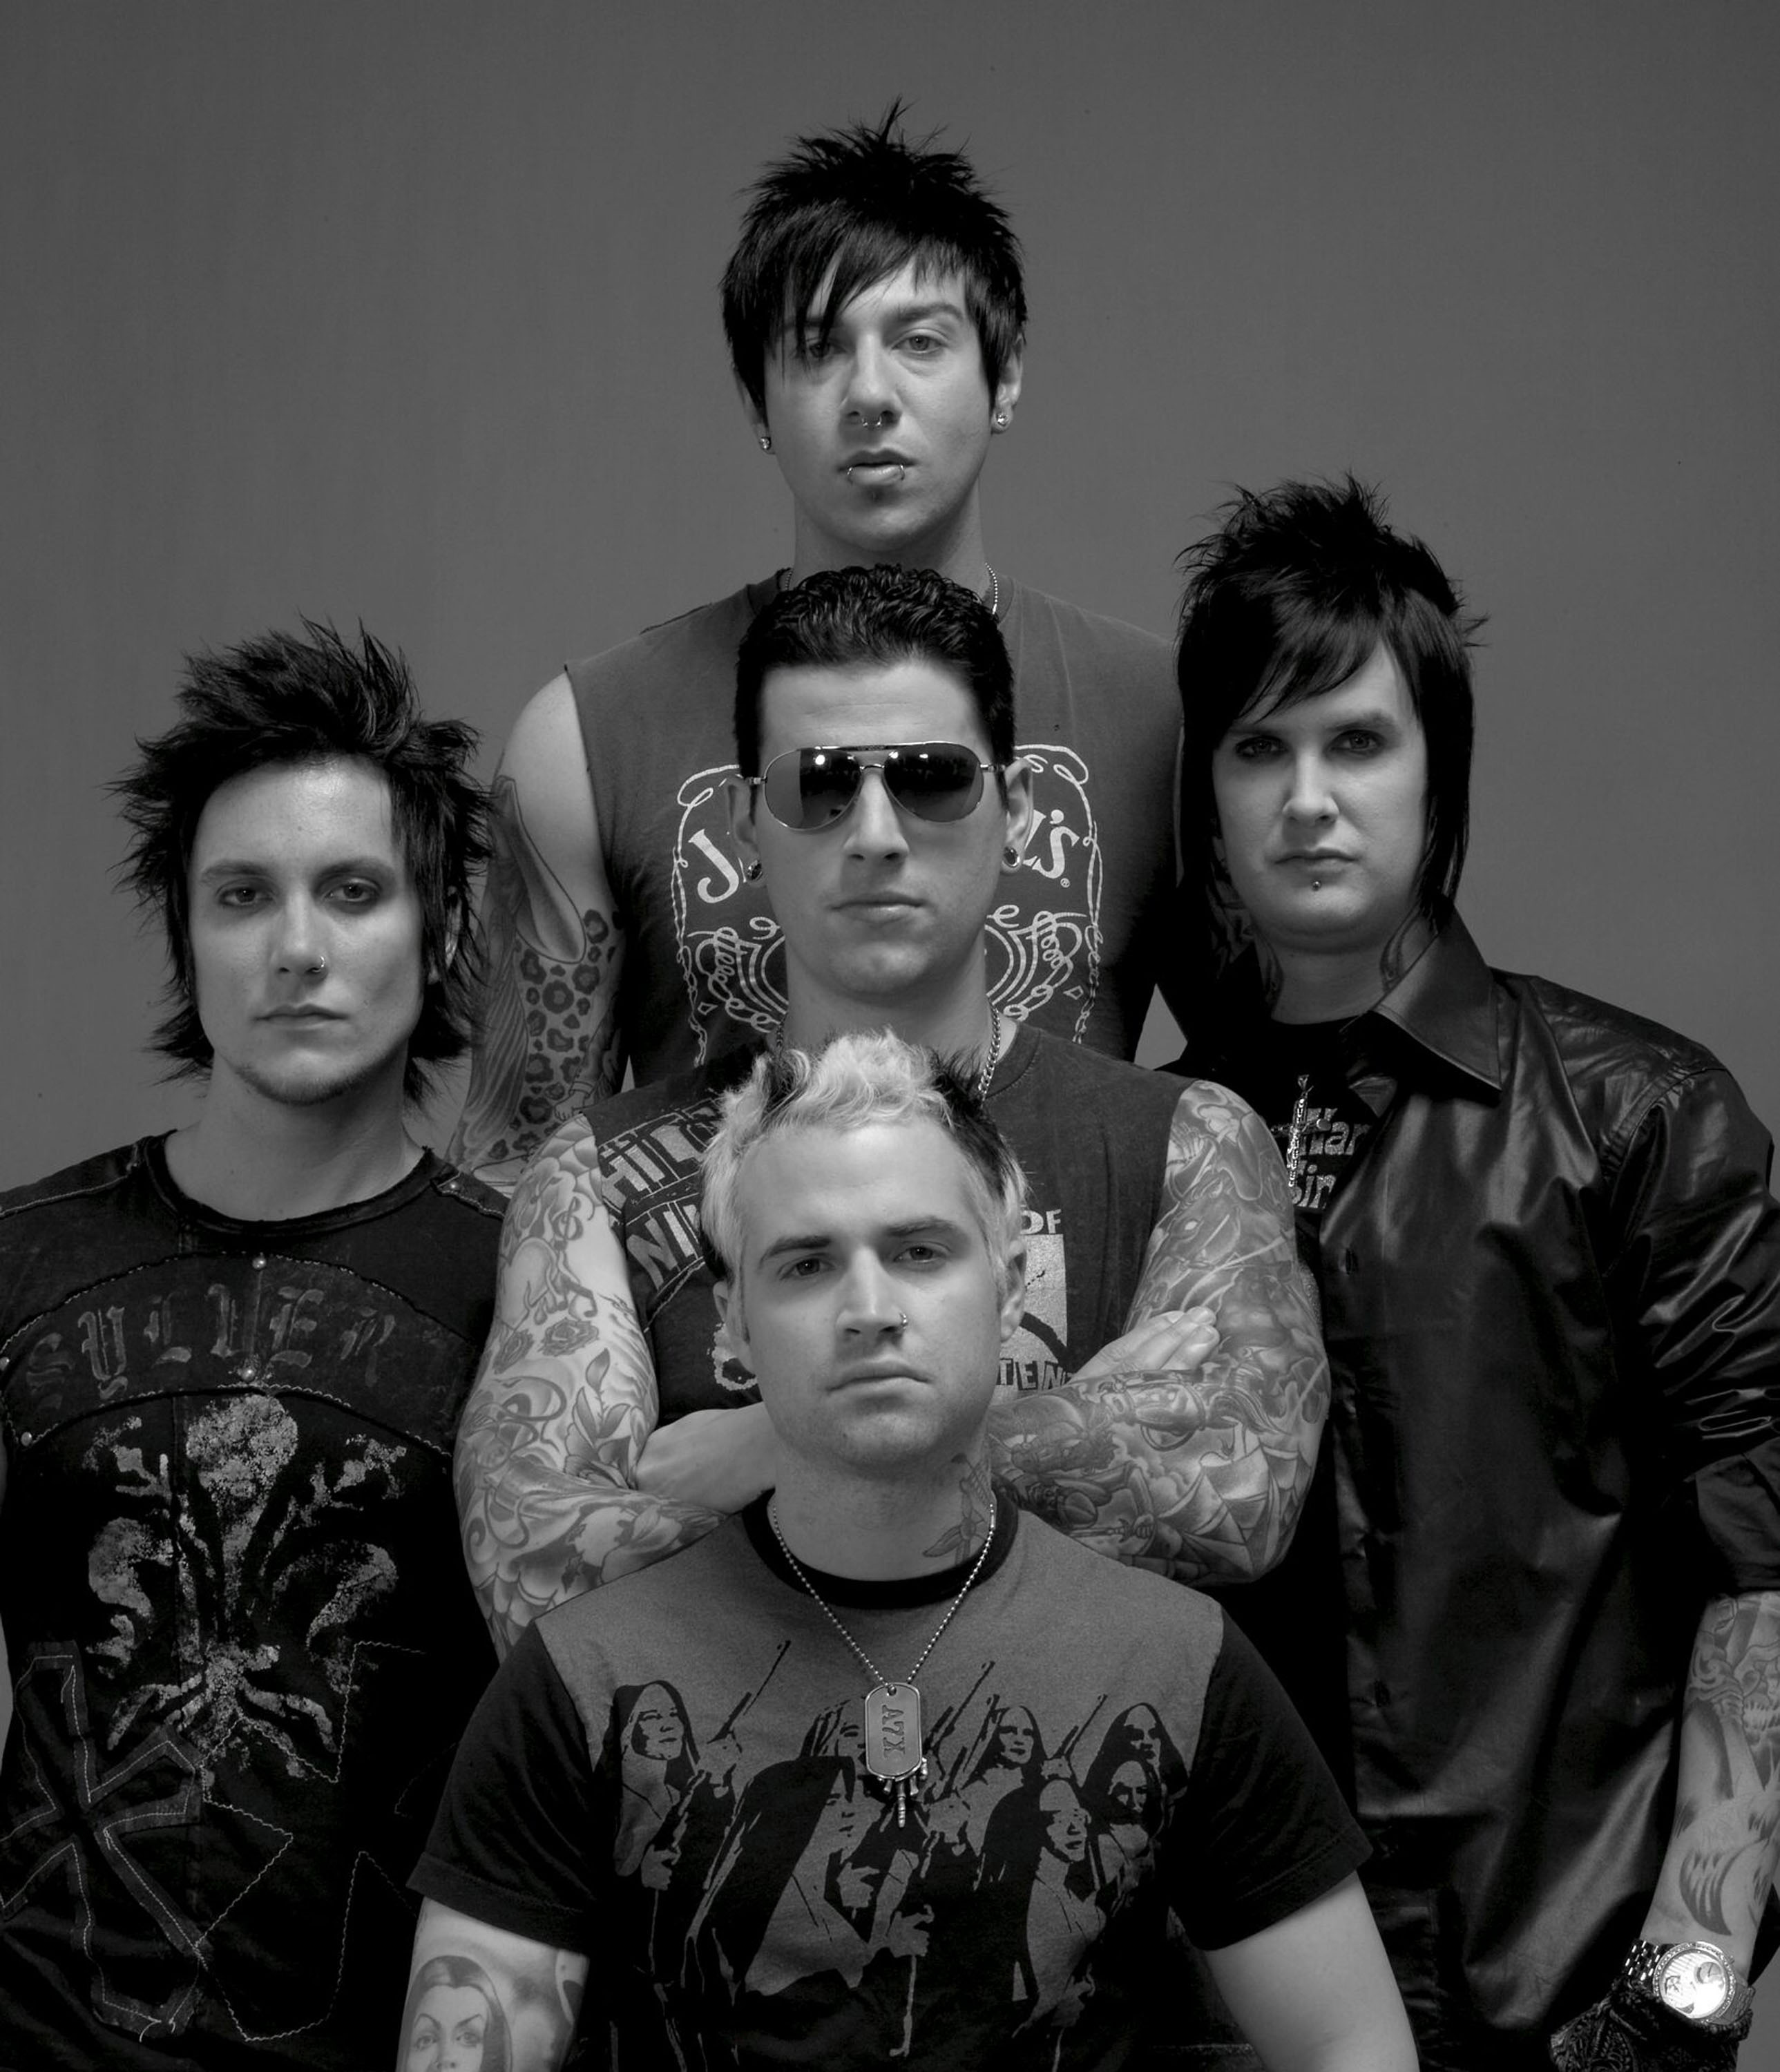 Avenged sevenfold fifty fucking times